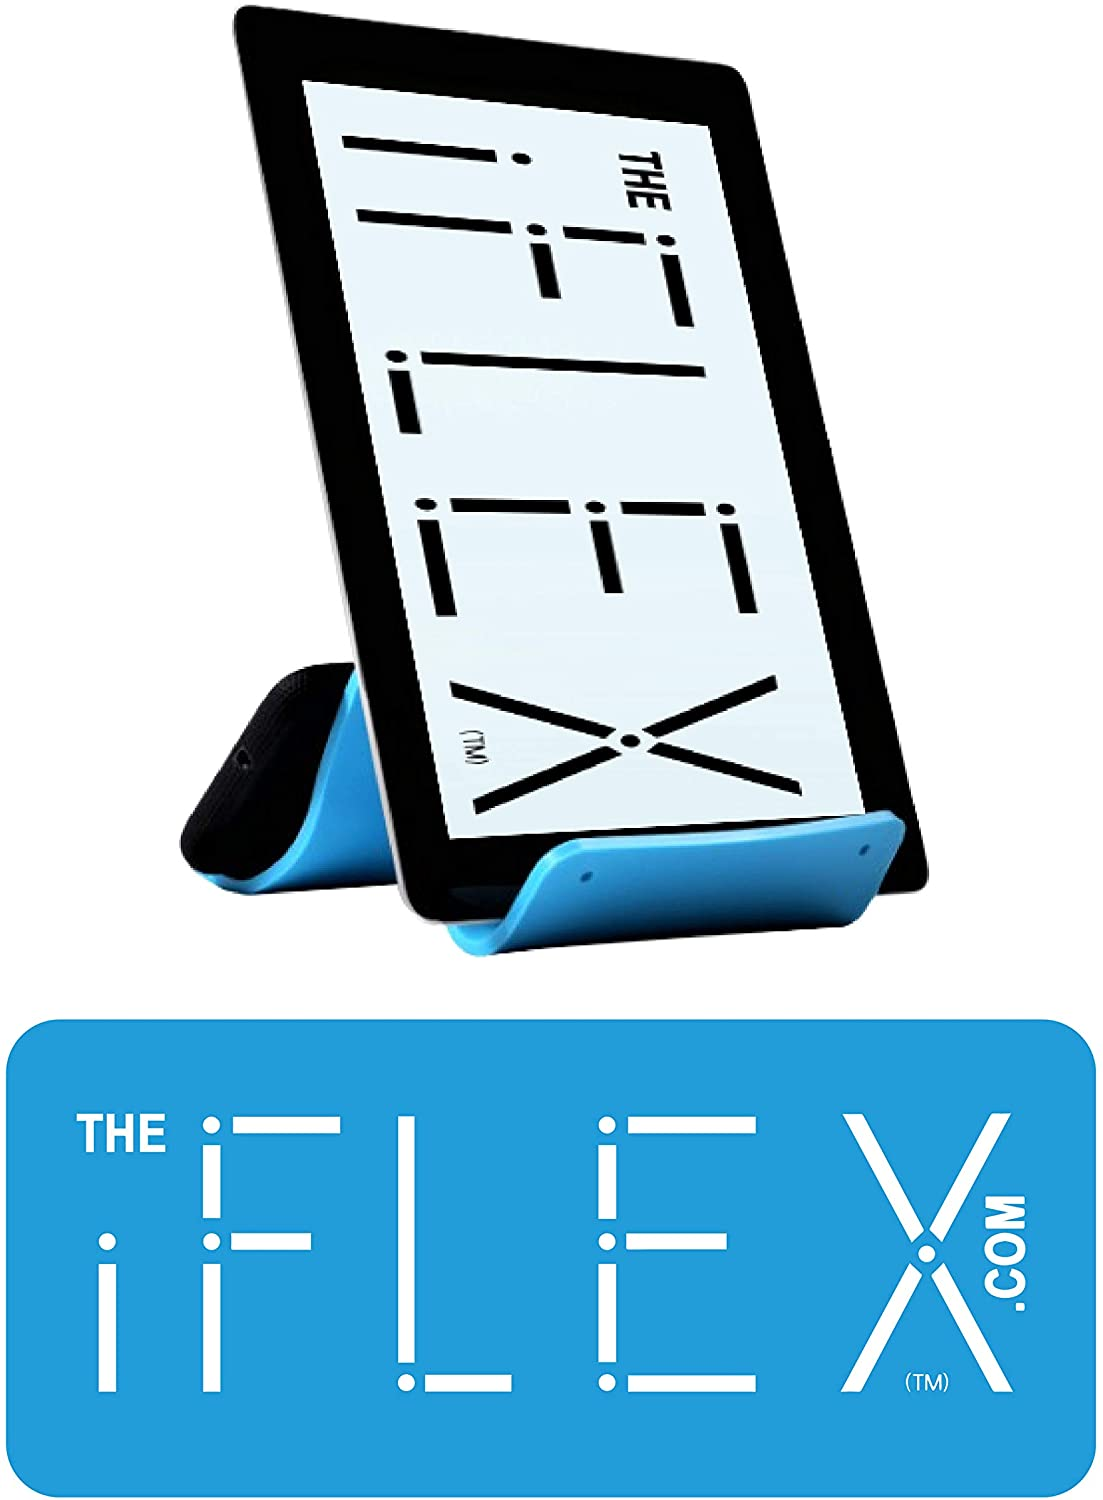 iFLEX Cell Phone Stand and Tablet Stand for Air Travel, Work and Home – This Flexible Phone Holder is The Perfect iPhone Stand and Holds Any Mobile Device – Non-Slip Grip, Strong and Durable